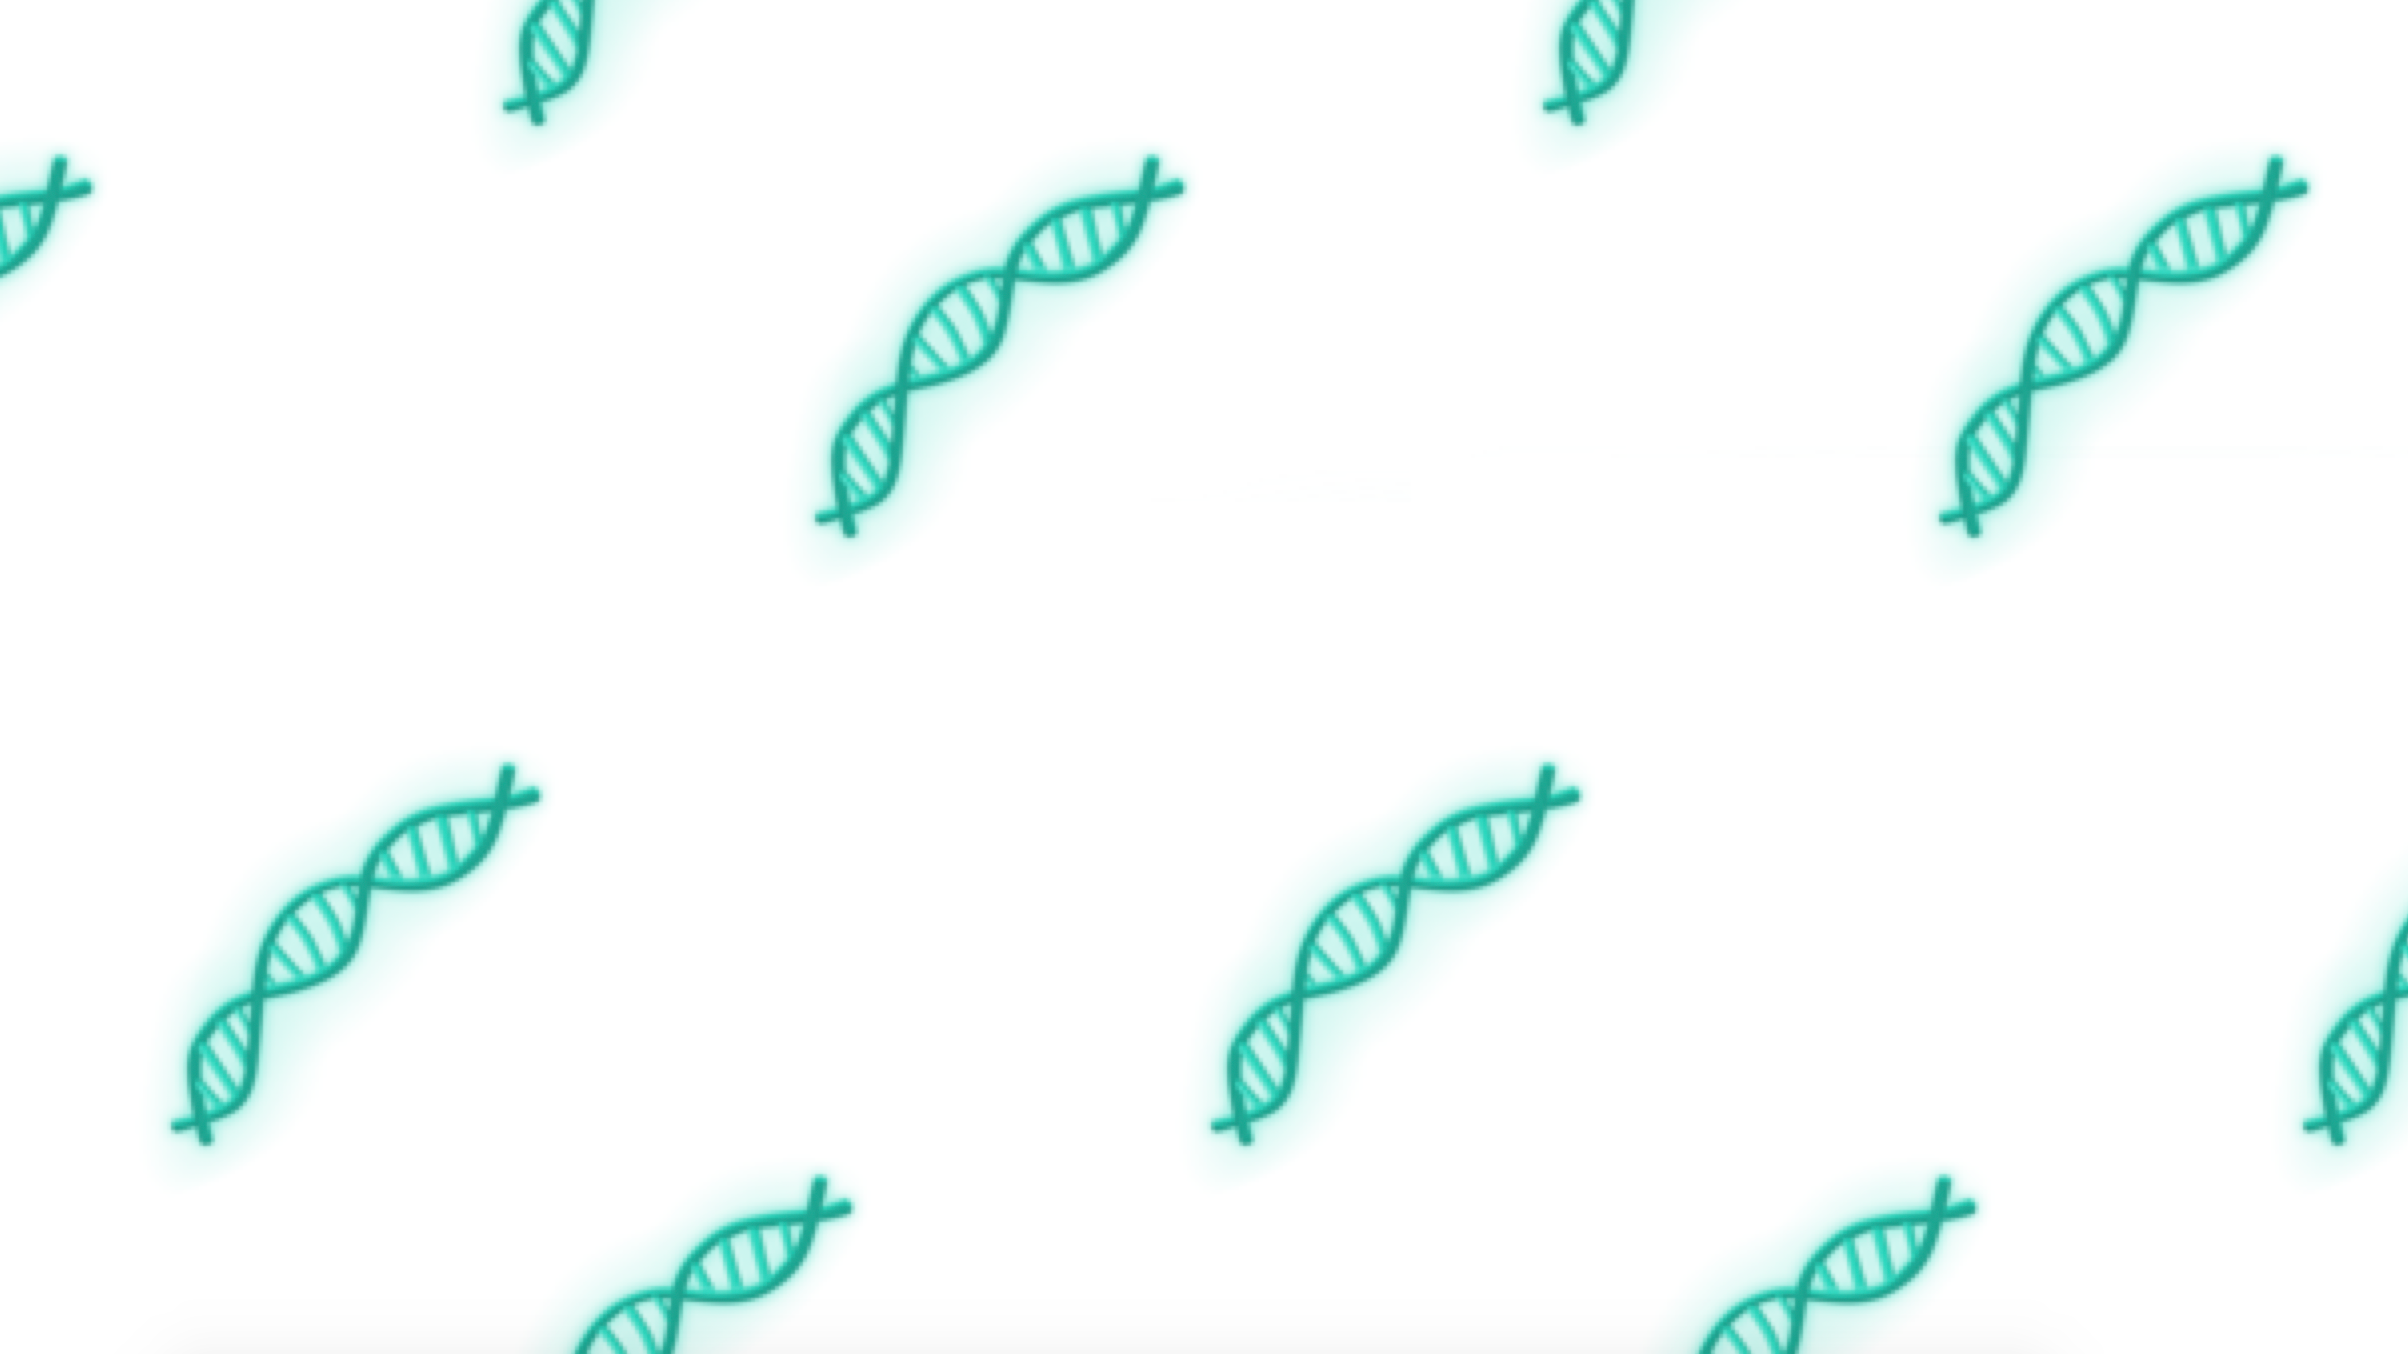 We're Getting A DNA Emoji, But It's Twisted The Wrong Way